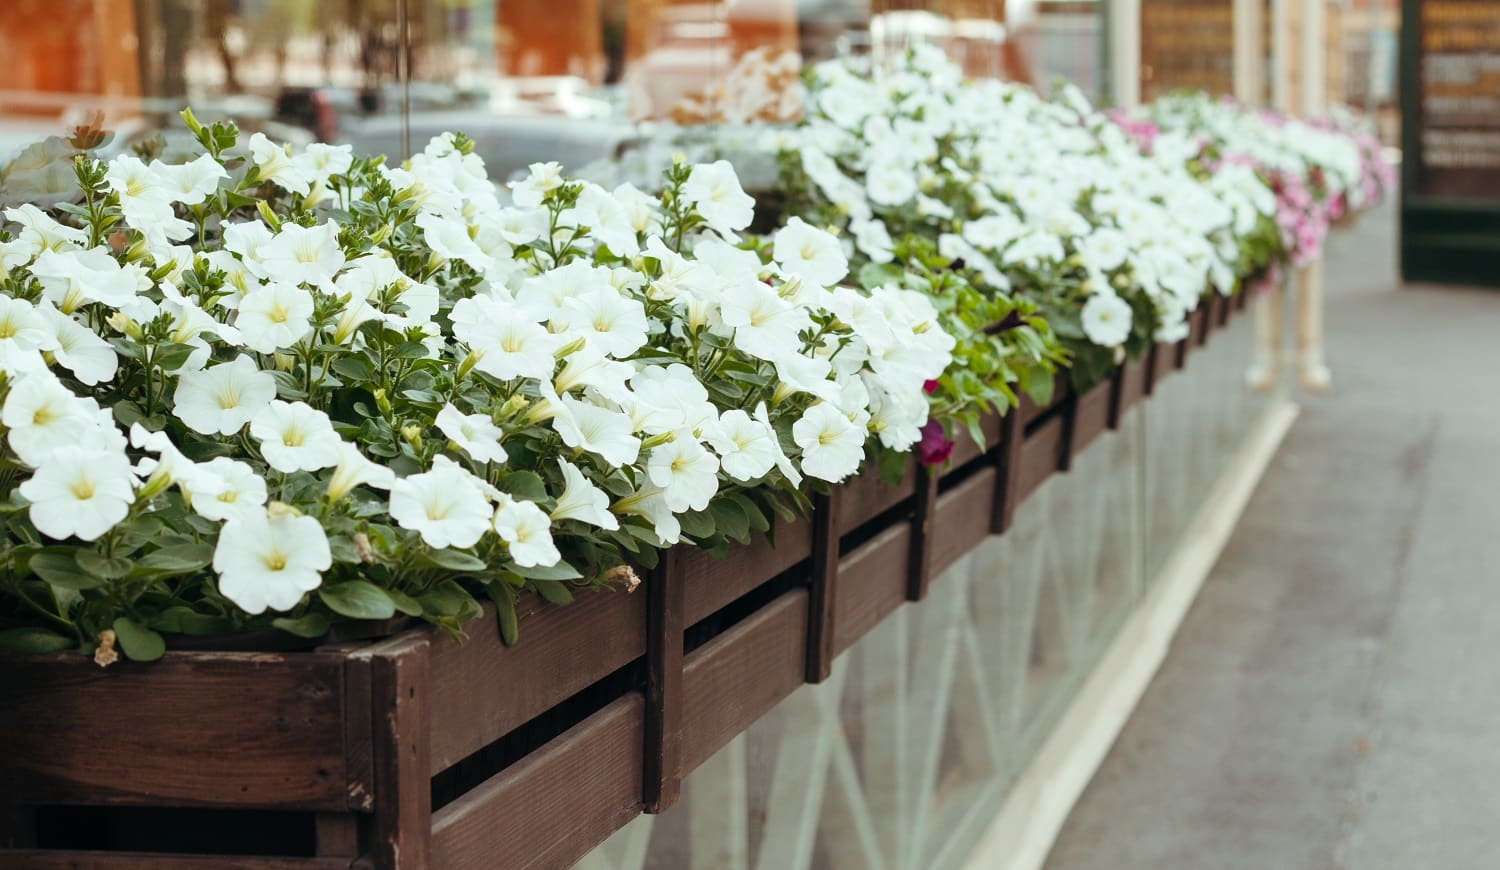 blooming white Petunia in a hanging retro planters on the street